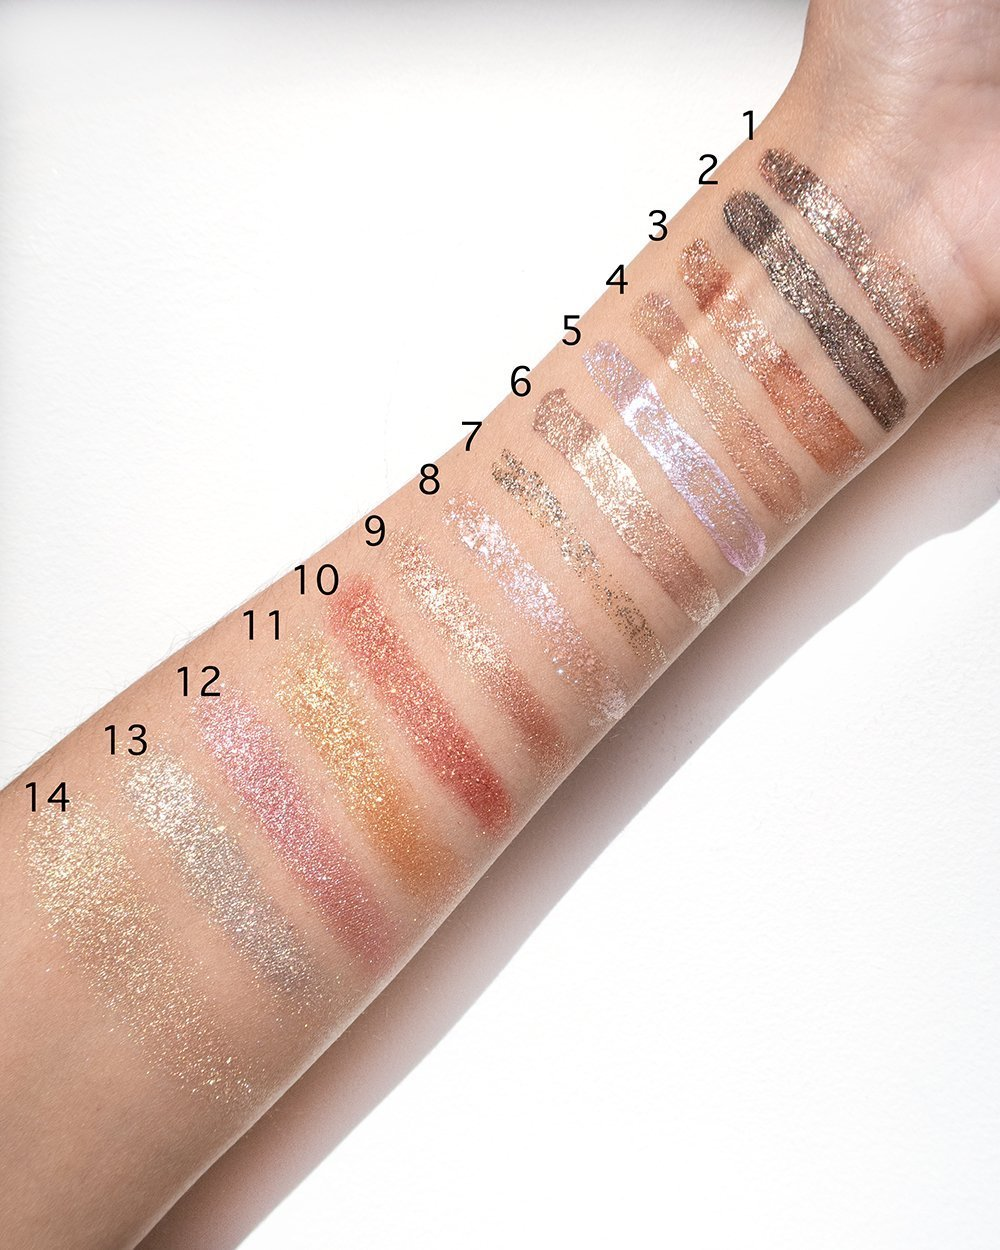 The Best Glittery and Metallic Eyeshadows Swatched #Makeup #Beauty #Swatches